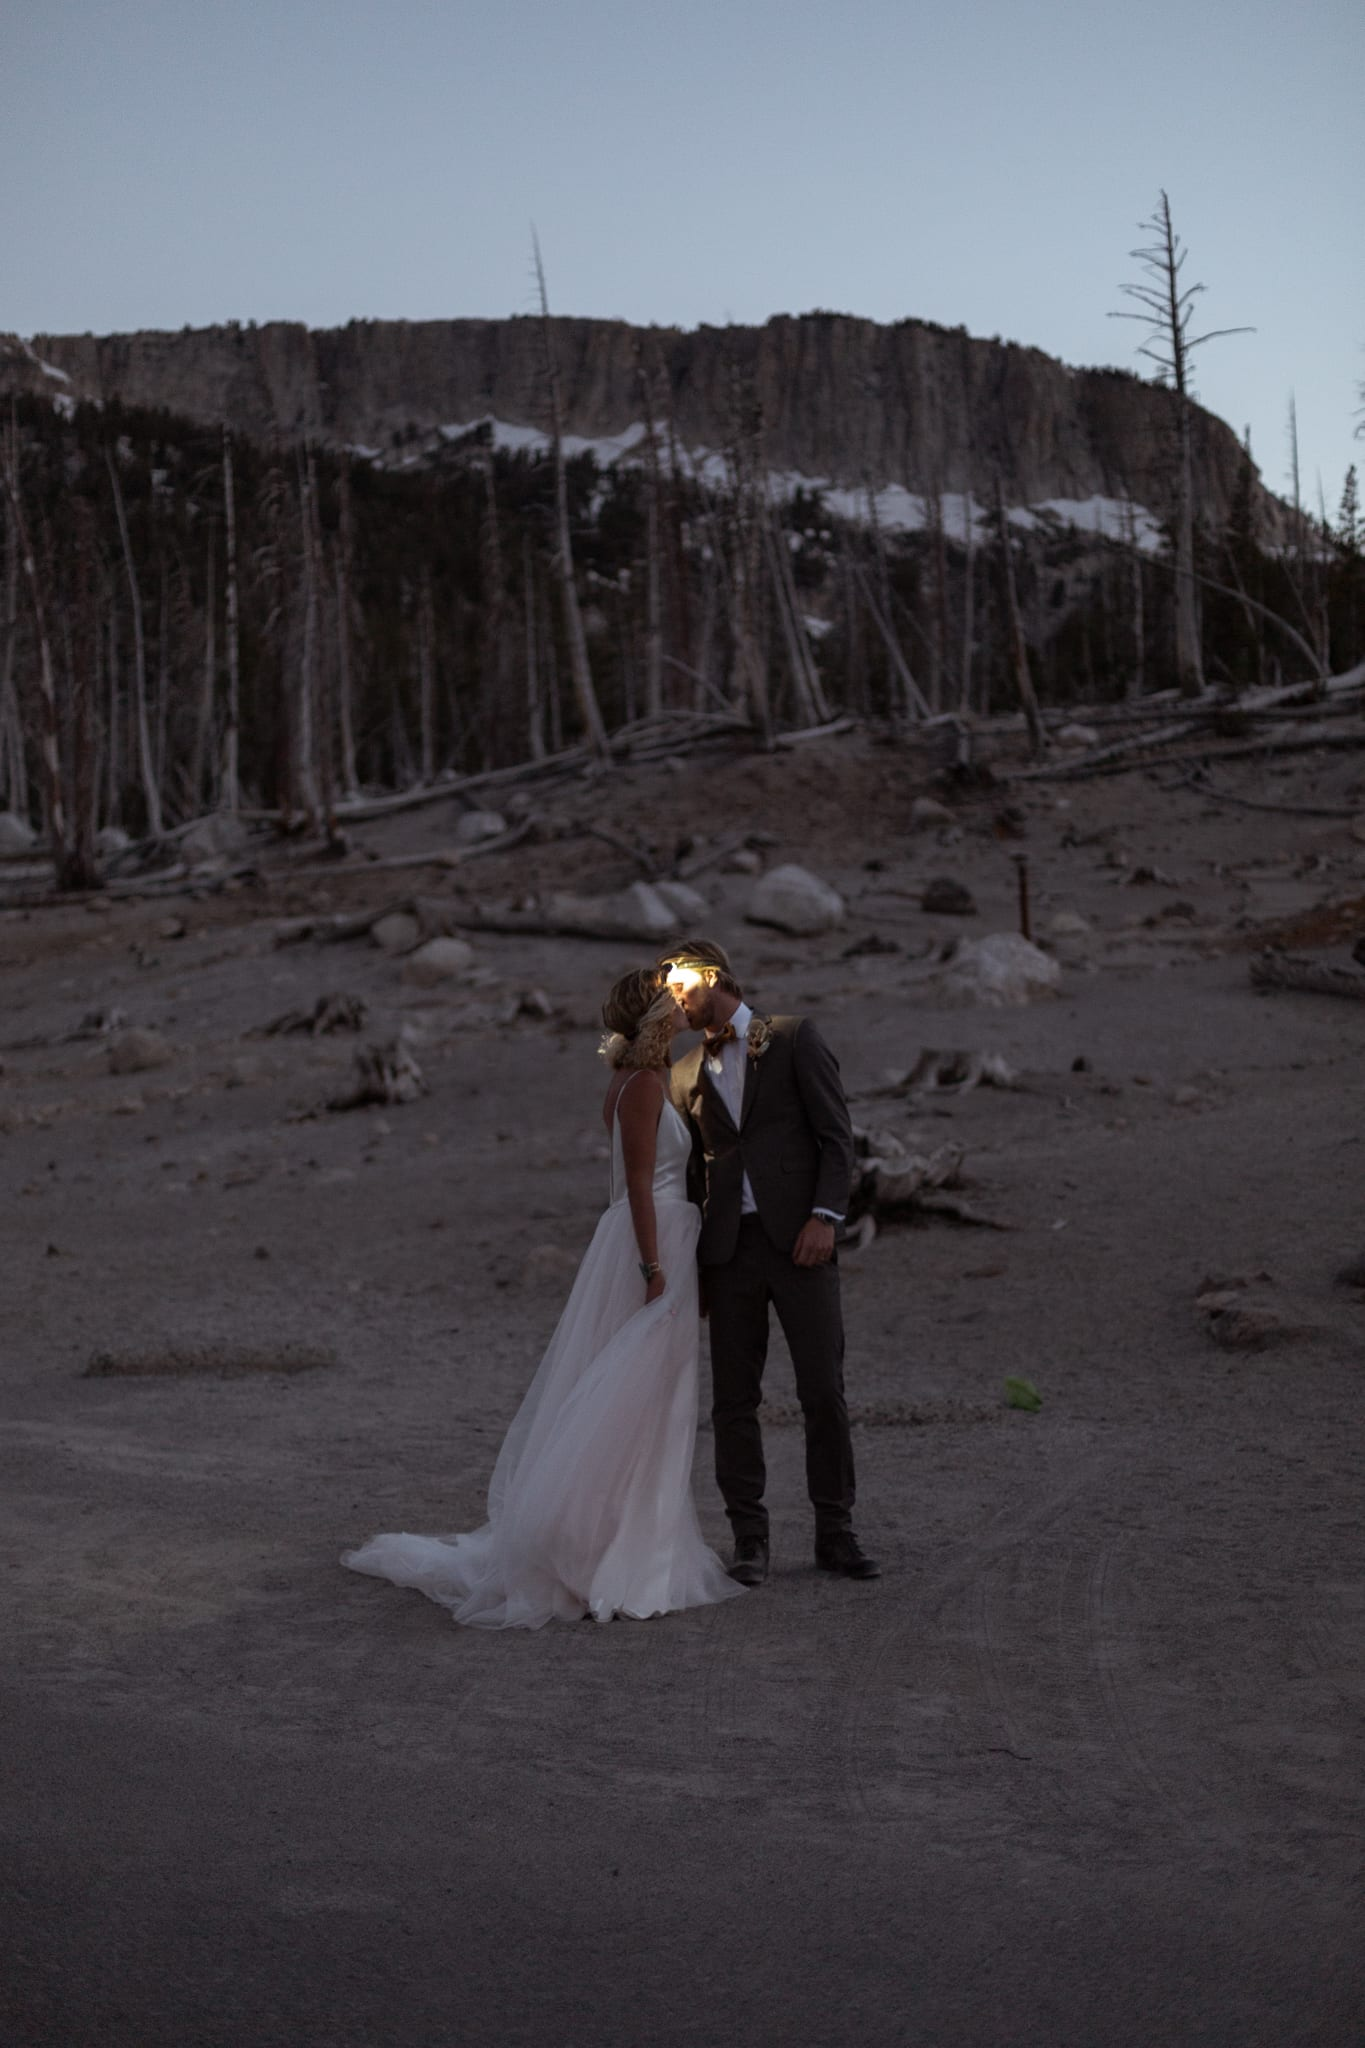 Tyler and Haylee share a kiss at night while the light from the headlamps they are wearing light up their faces.